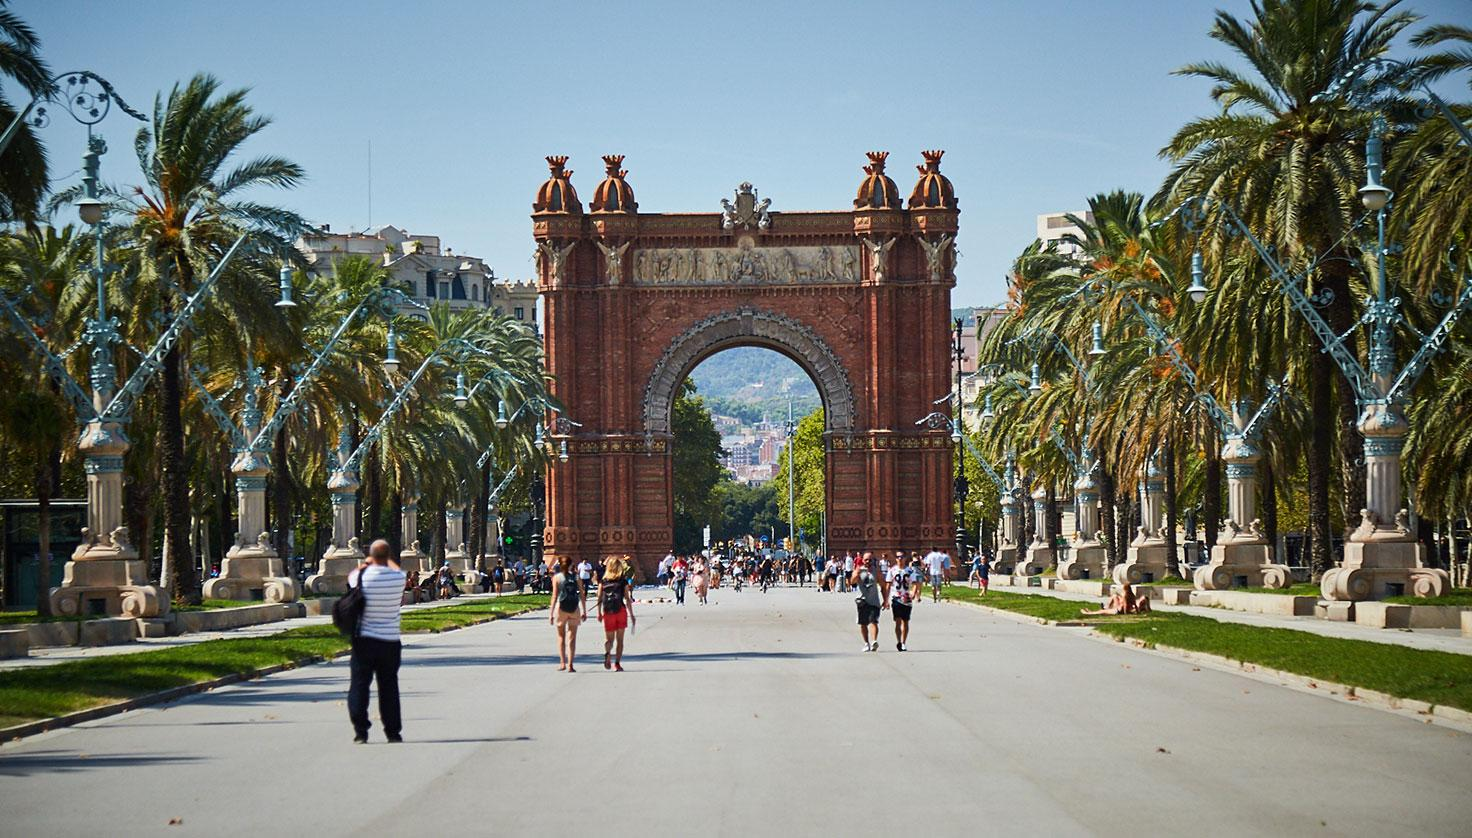 Photo Arc de Triomf - Ciutadella Park